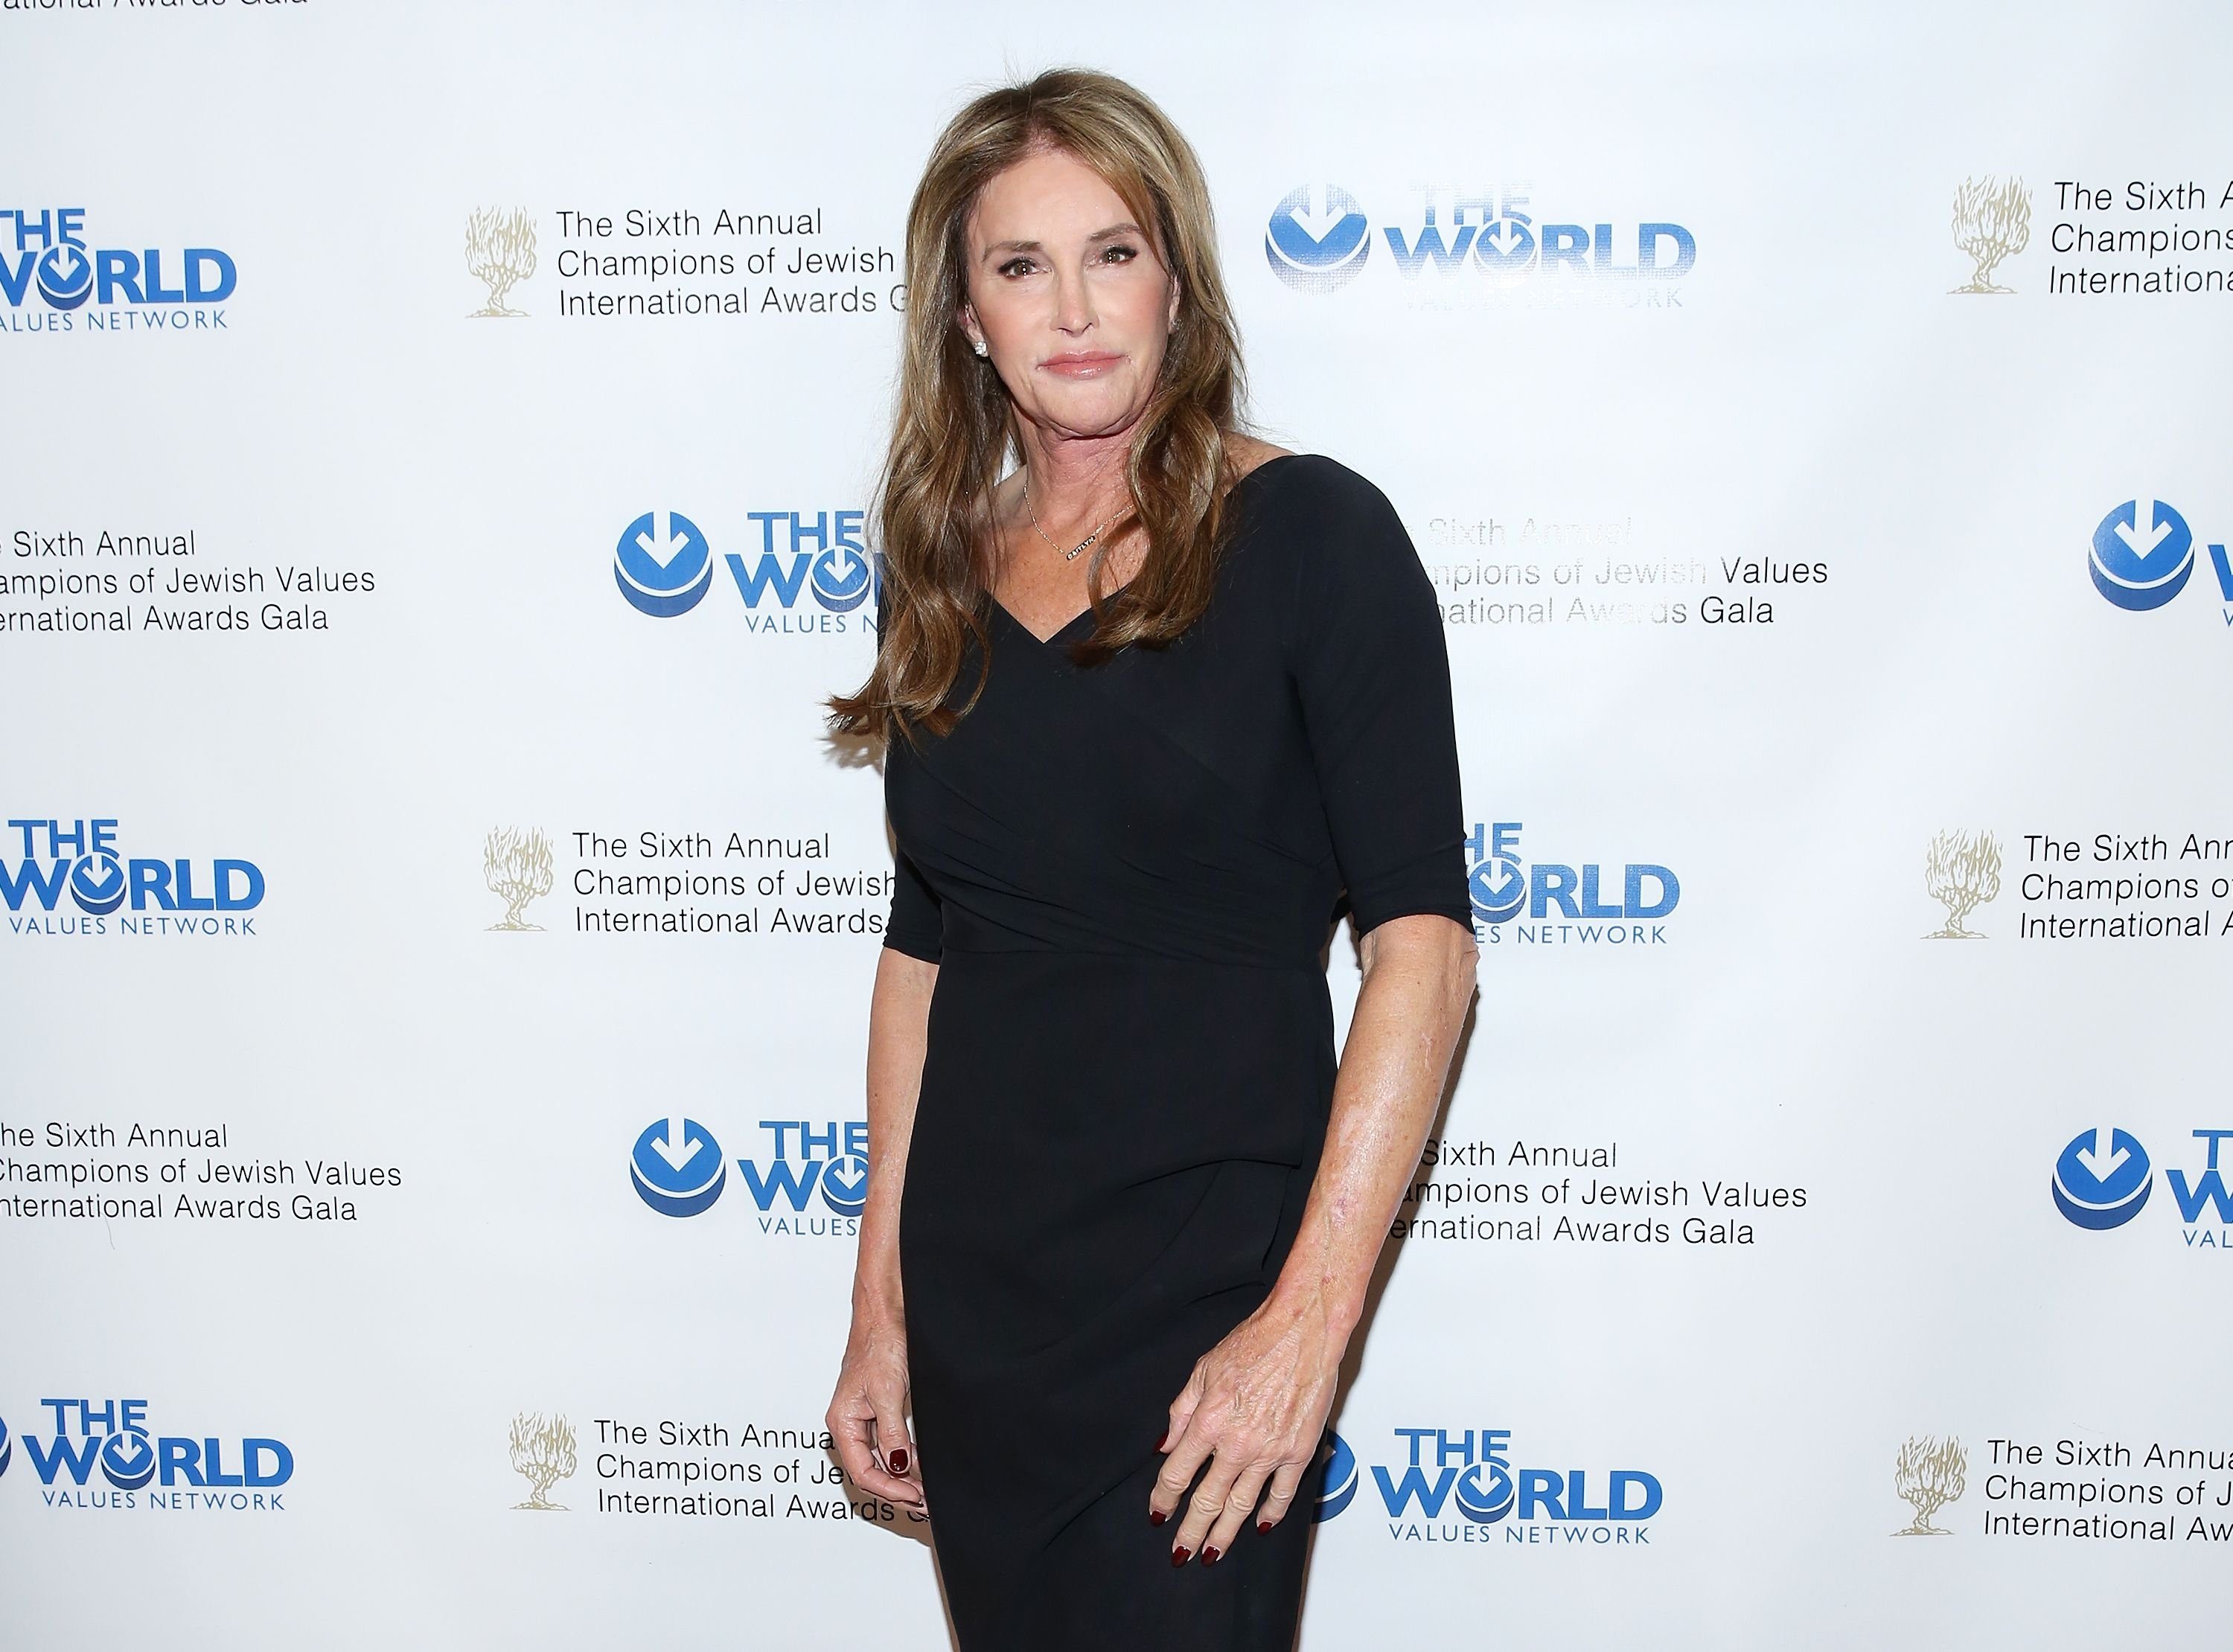 Caitlyn Jenner at the 2018 World Values Network Champions of Jewish Values Awards Gala at The Plaza Hotel on March 8, 2018 | Photo: Getty Images